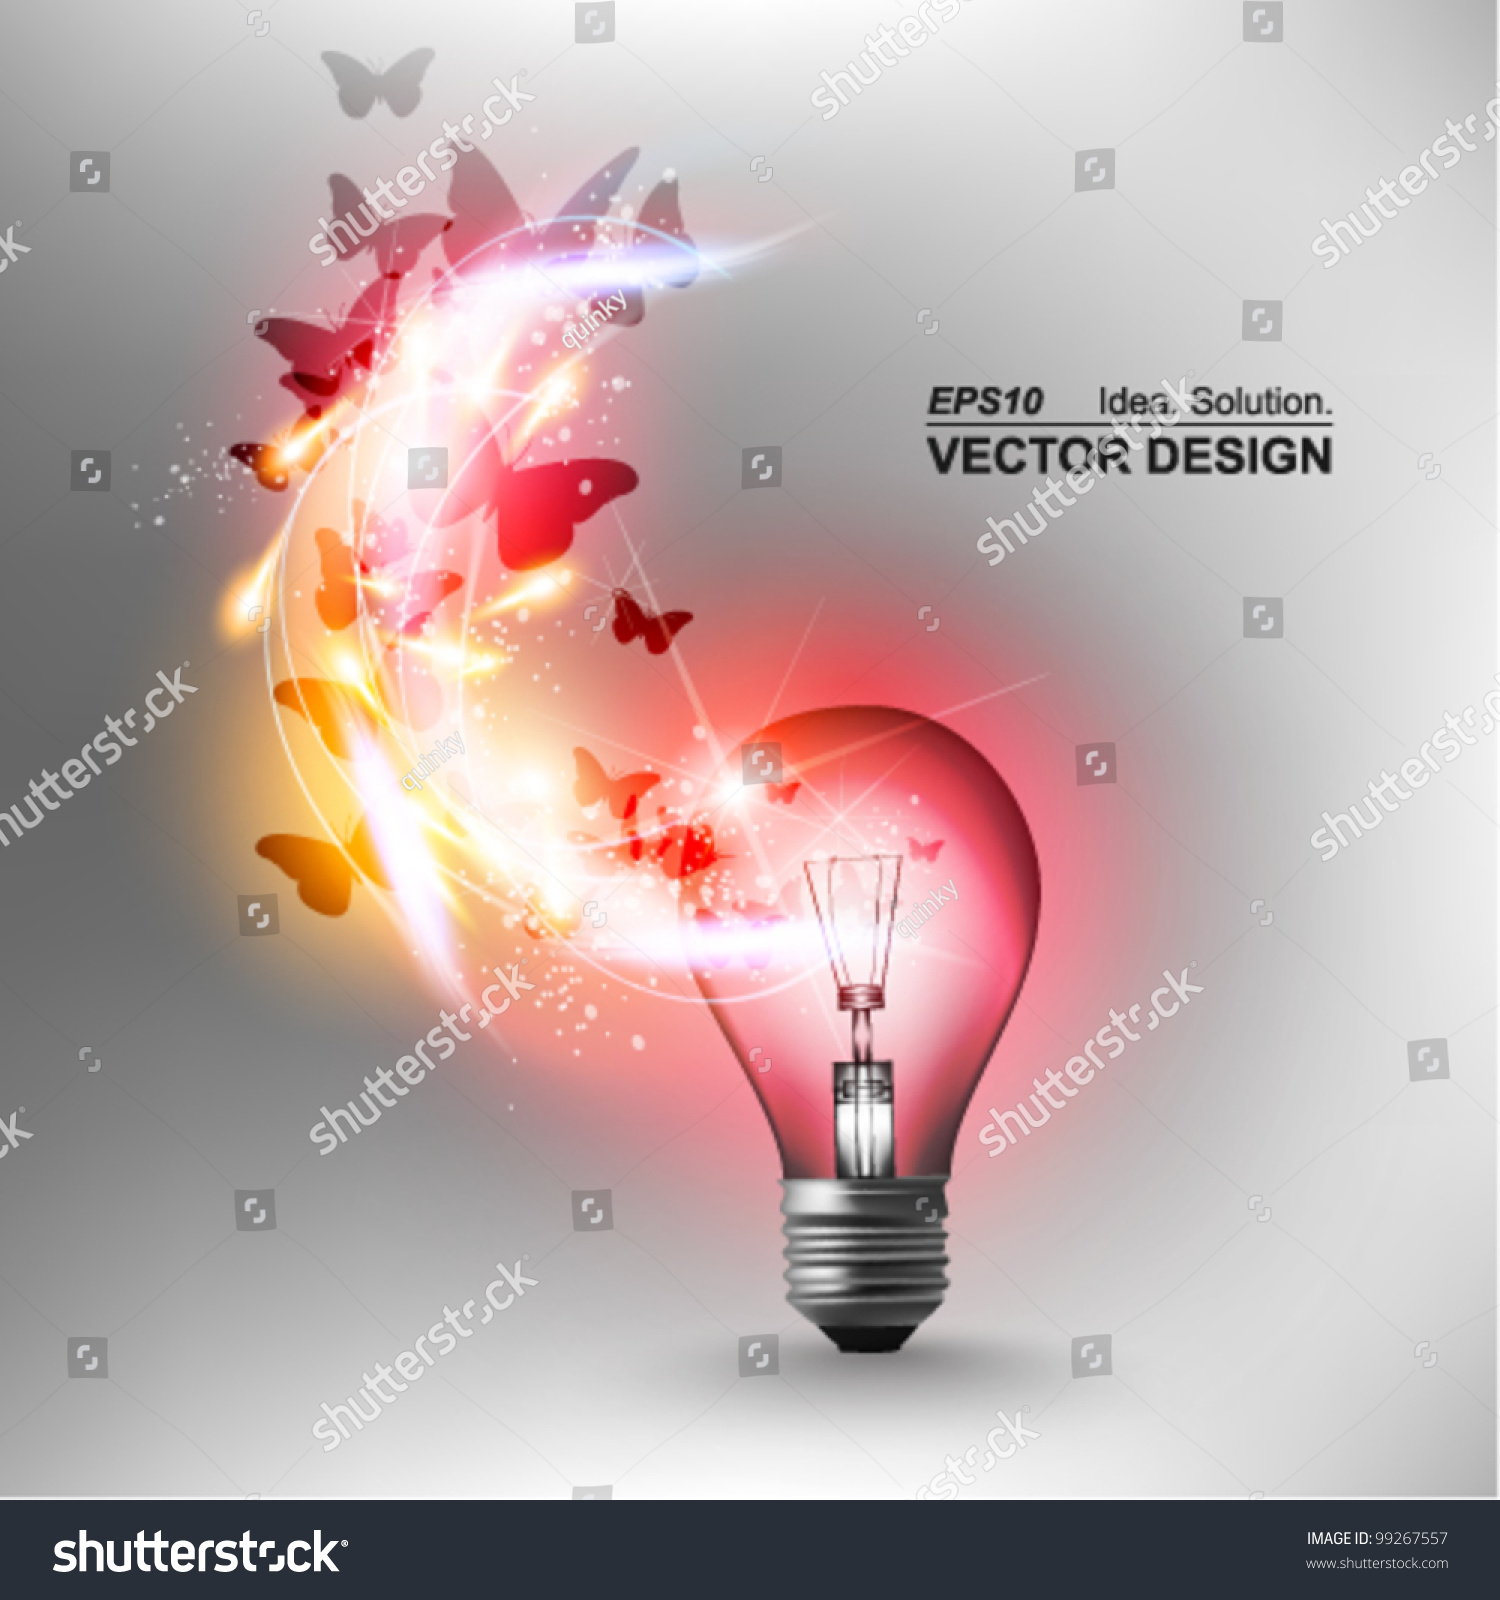 Idea Design ylexsounds electronic product design idea design idea design code design idea idea design Stylish Conceptual Digital Light Bulb Idea Design